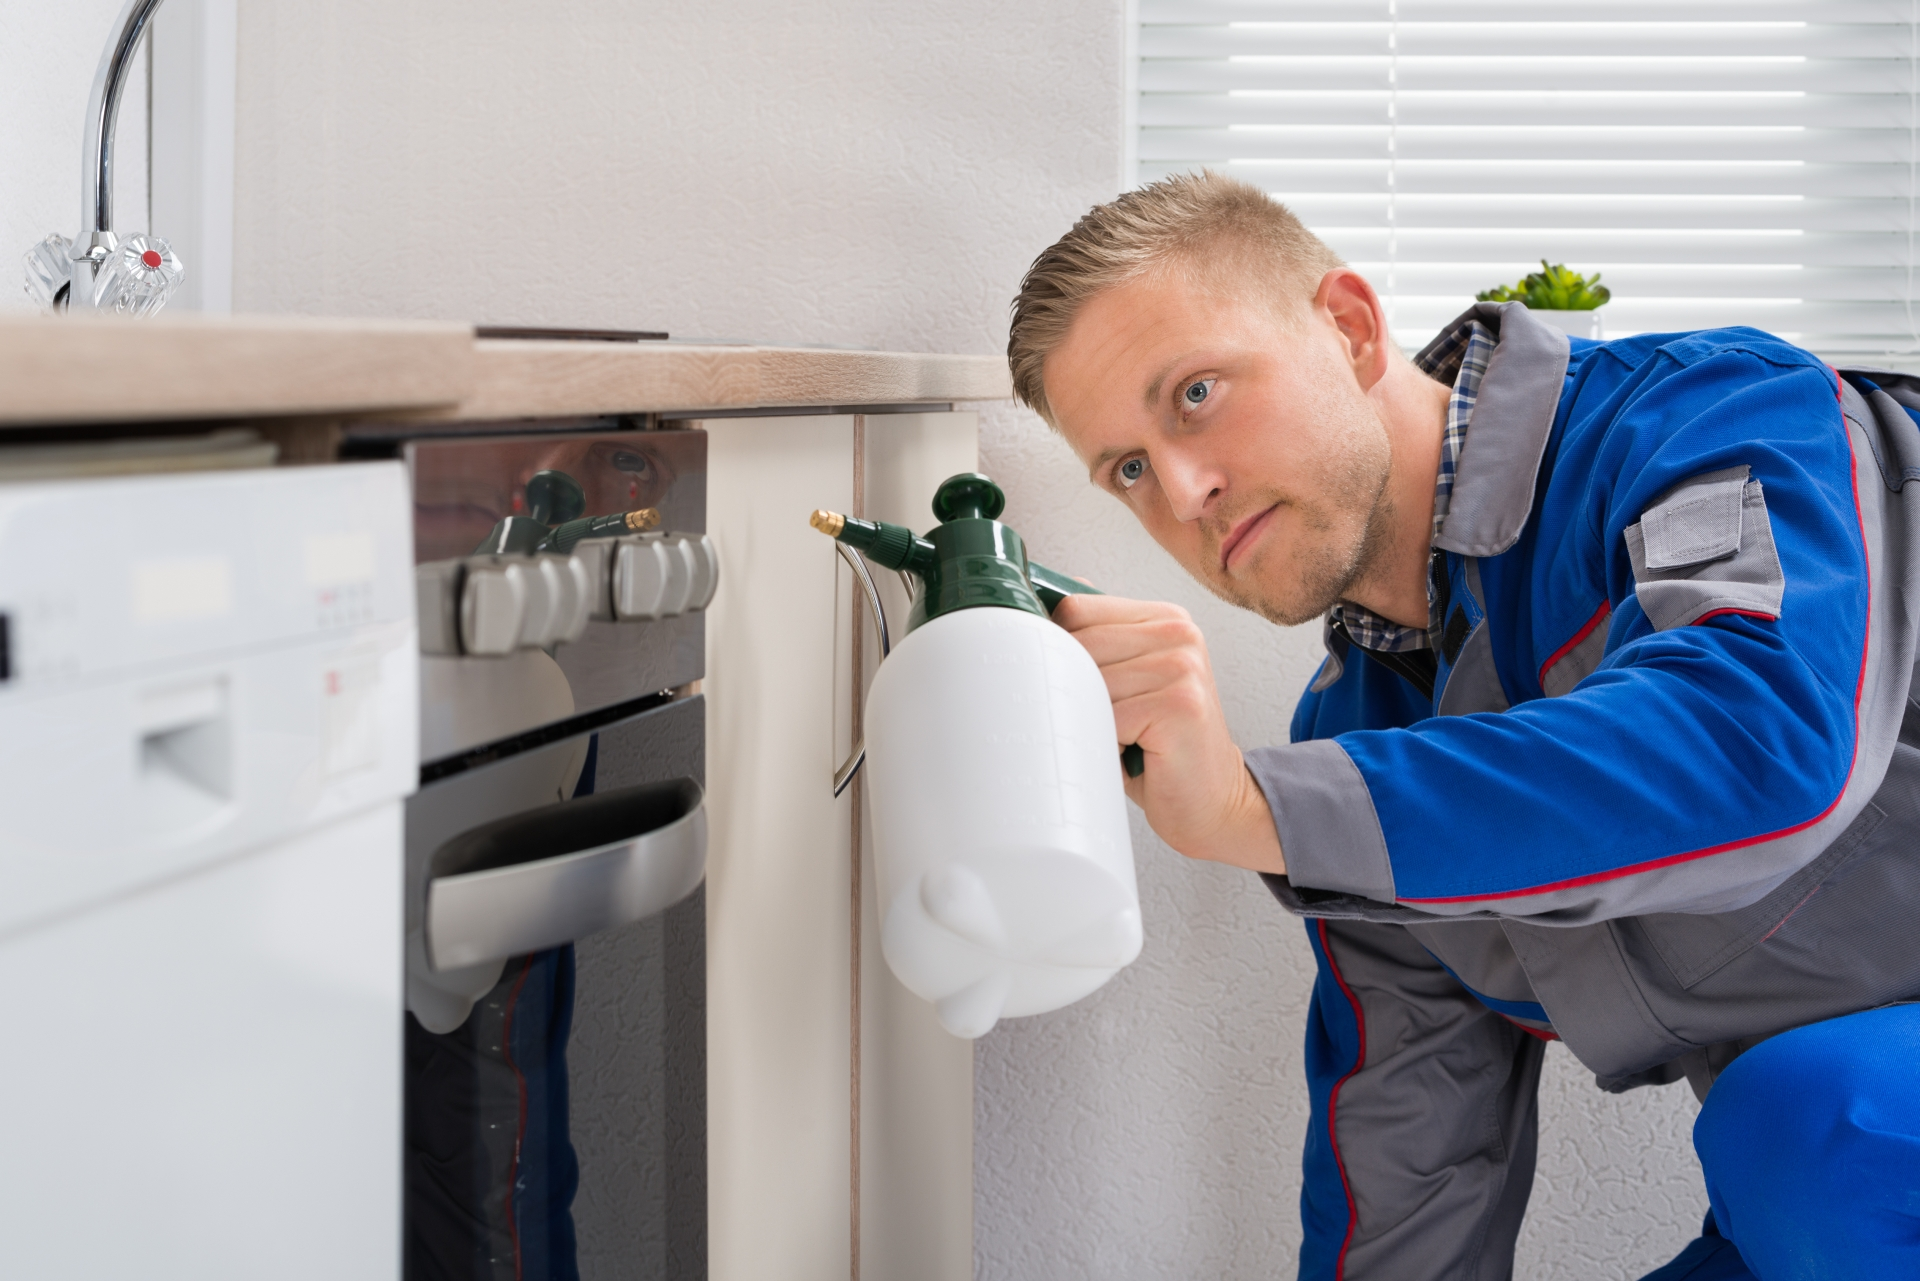 Pest Inspection, Pest Control in Wealdstone, Harrow Weald, HA3. Call Now 020 8166 9746